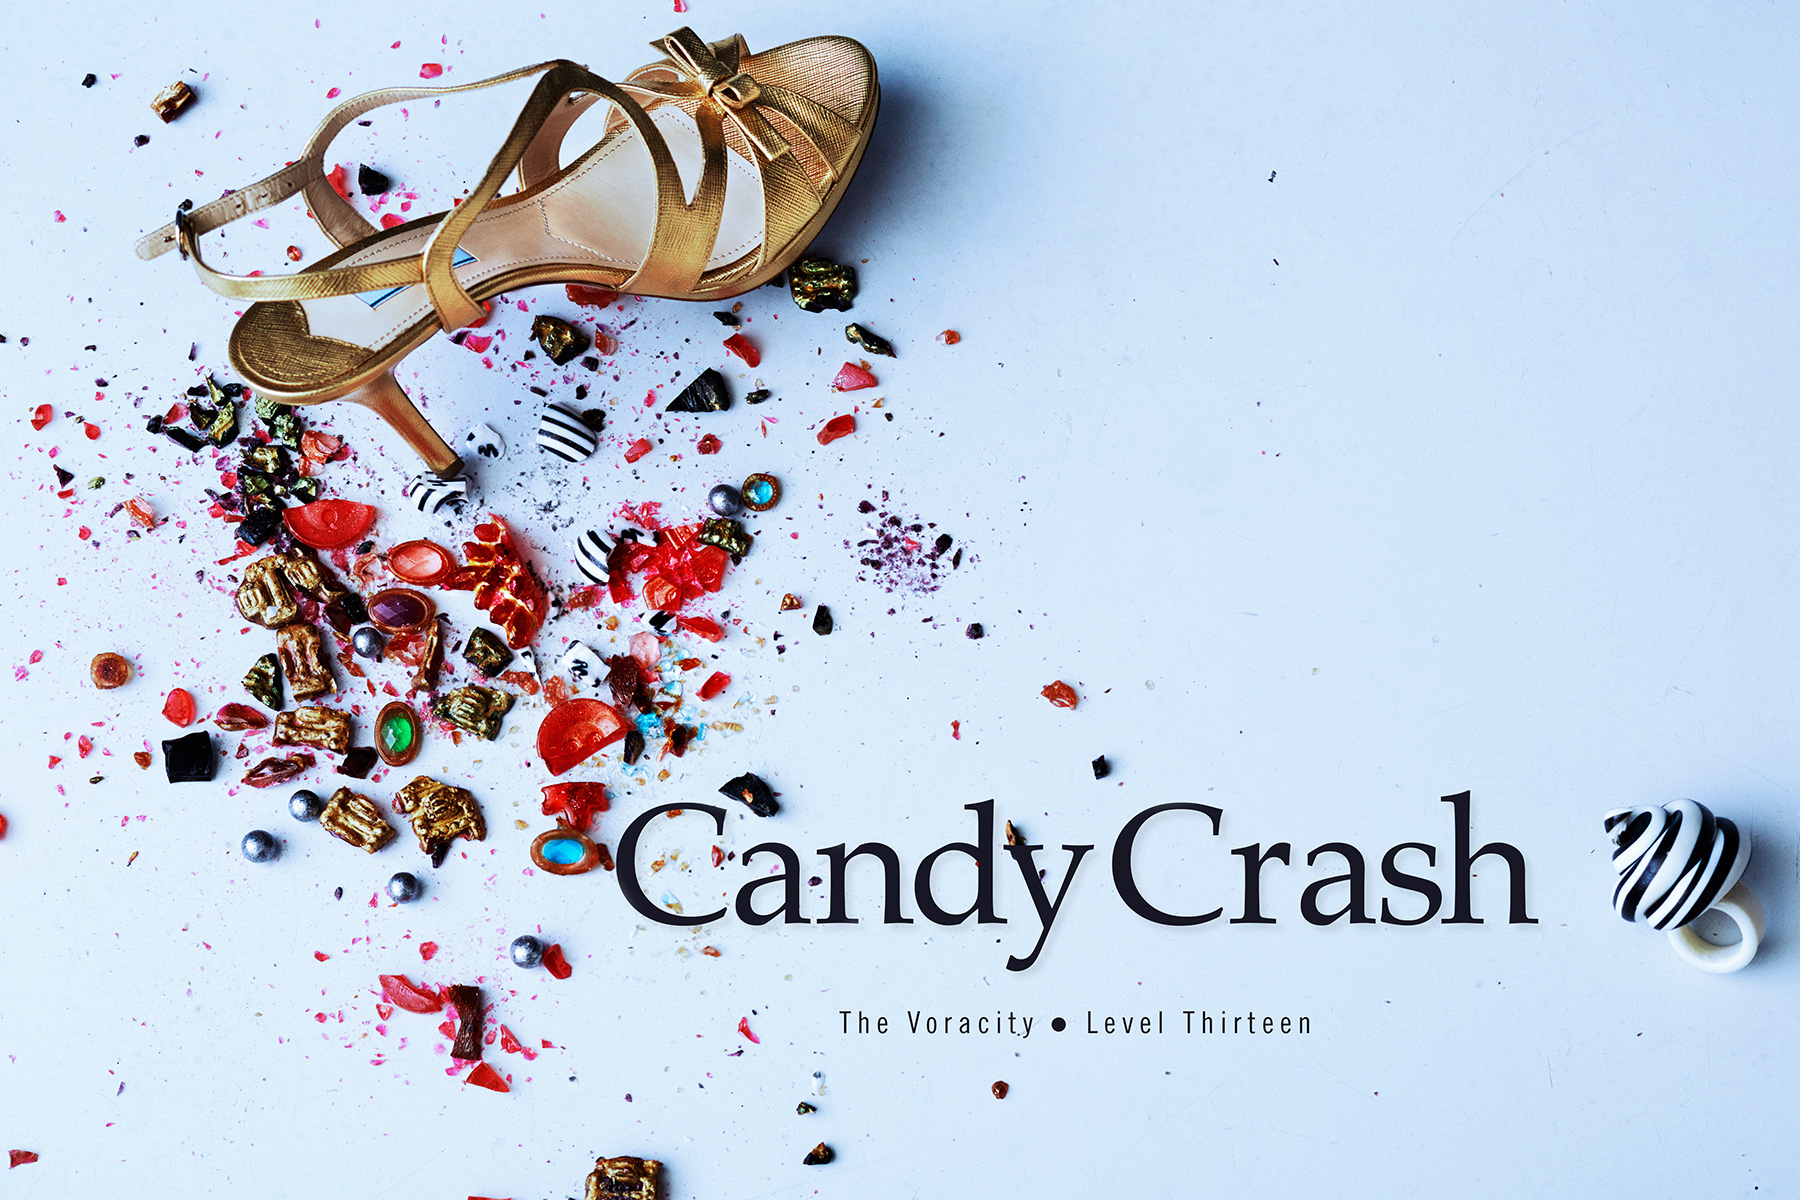 CANDY CRASH - The Voracity by Anna Williams